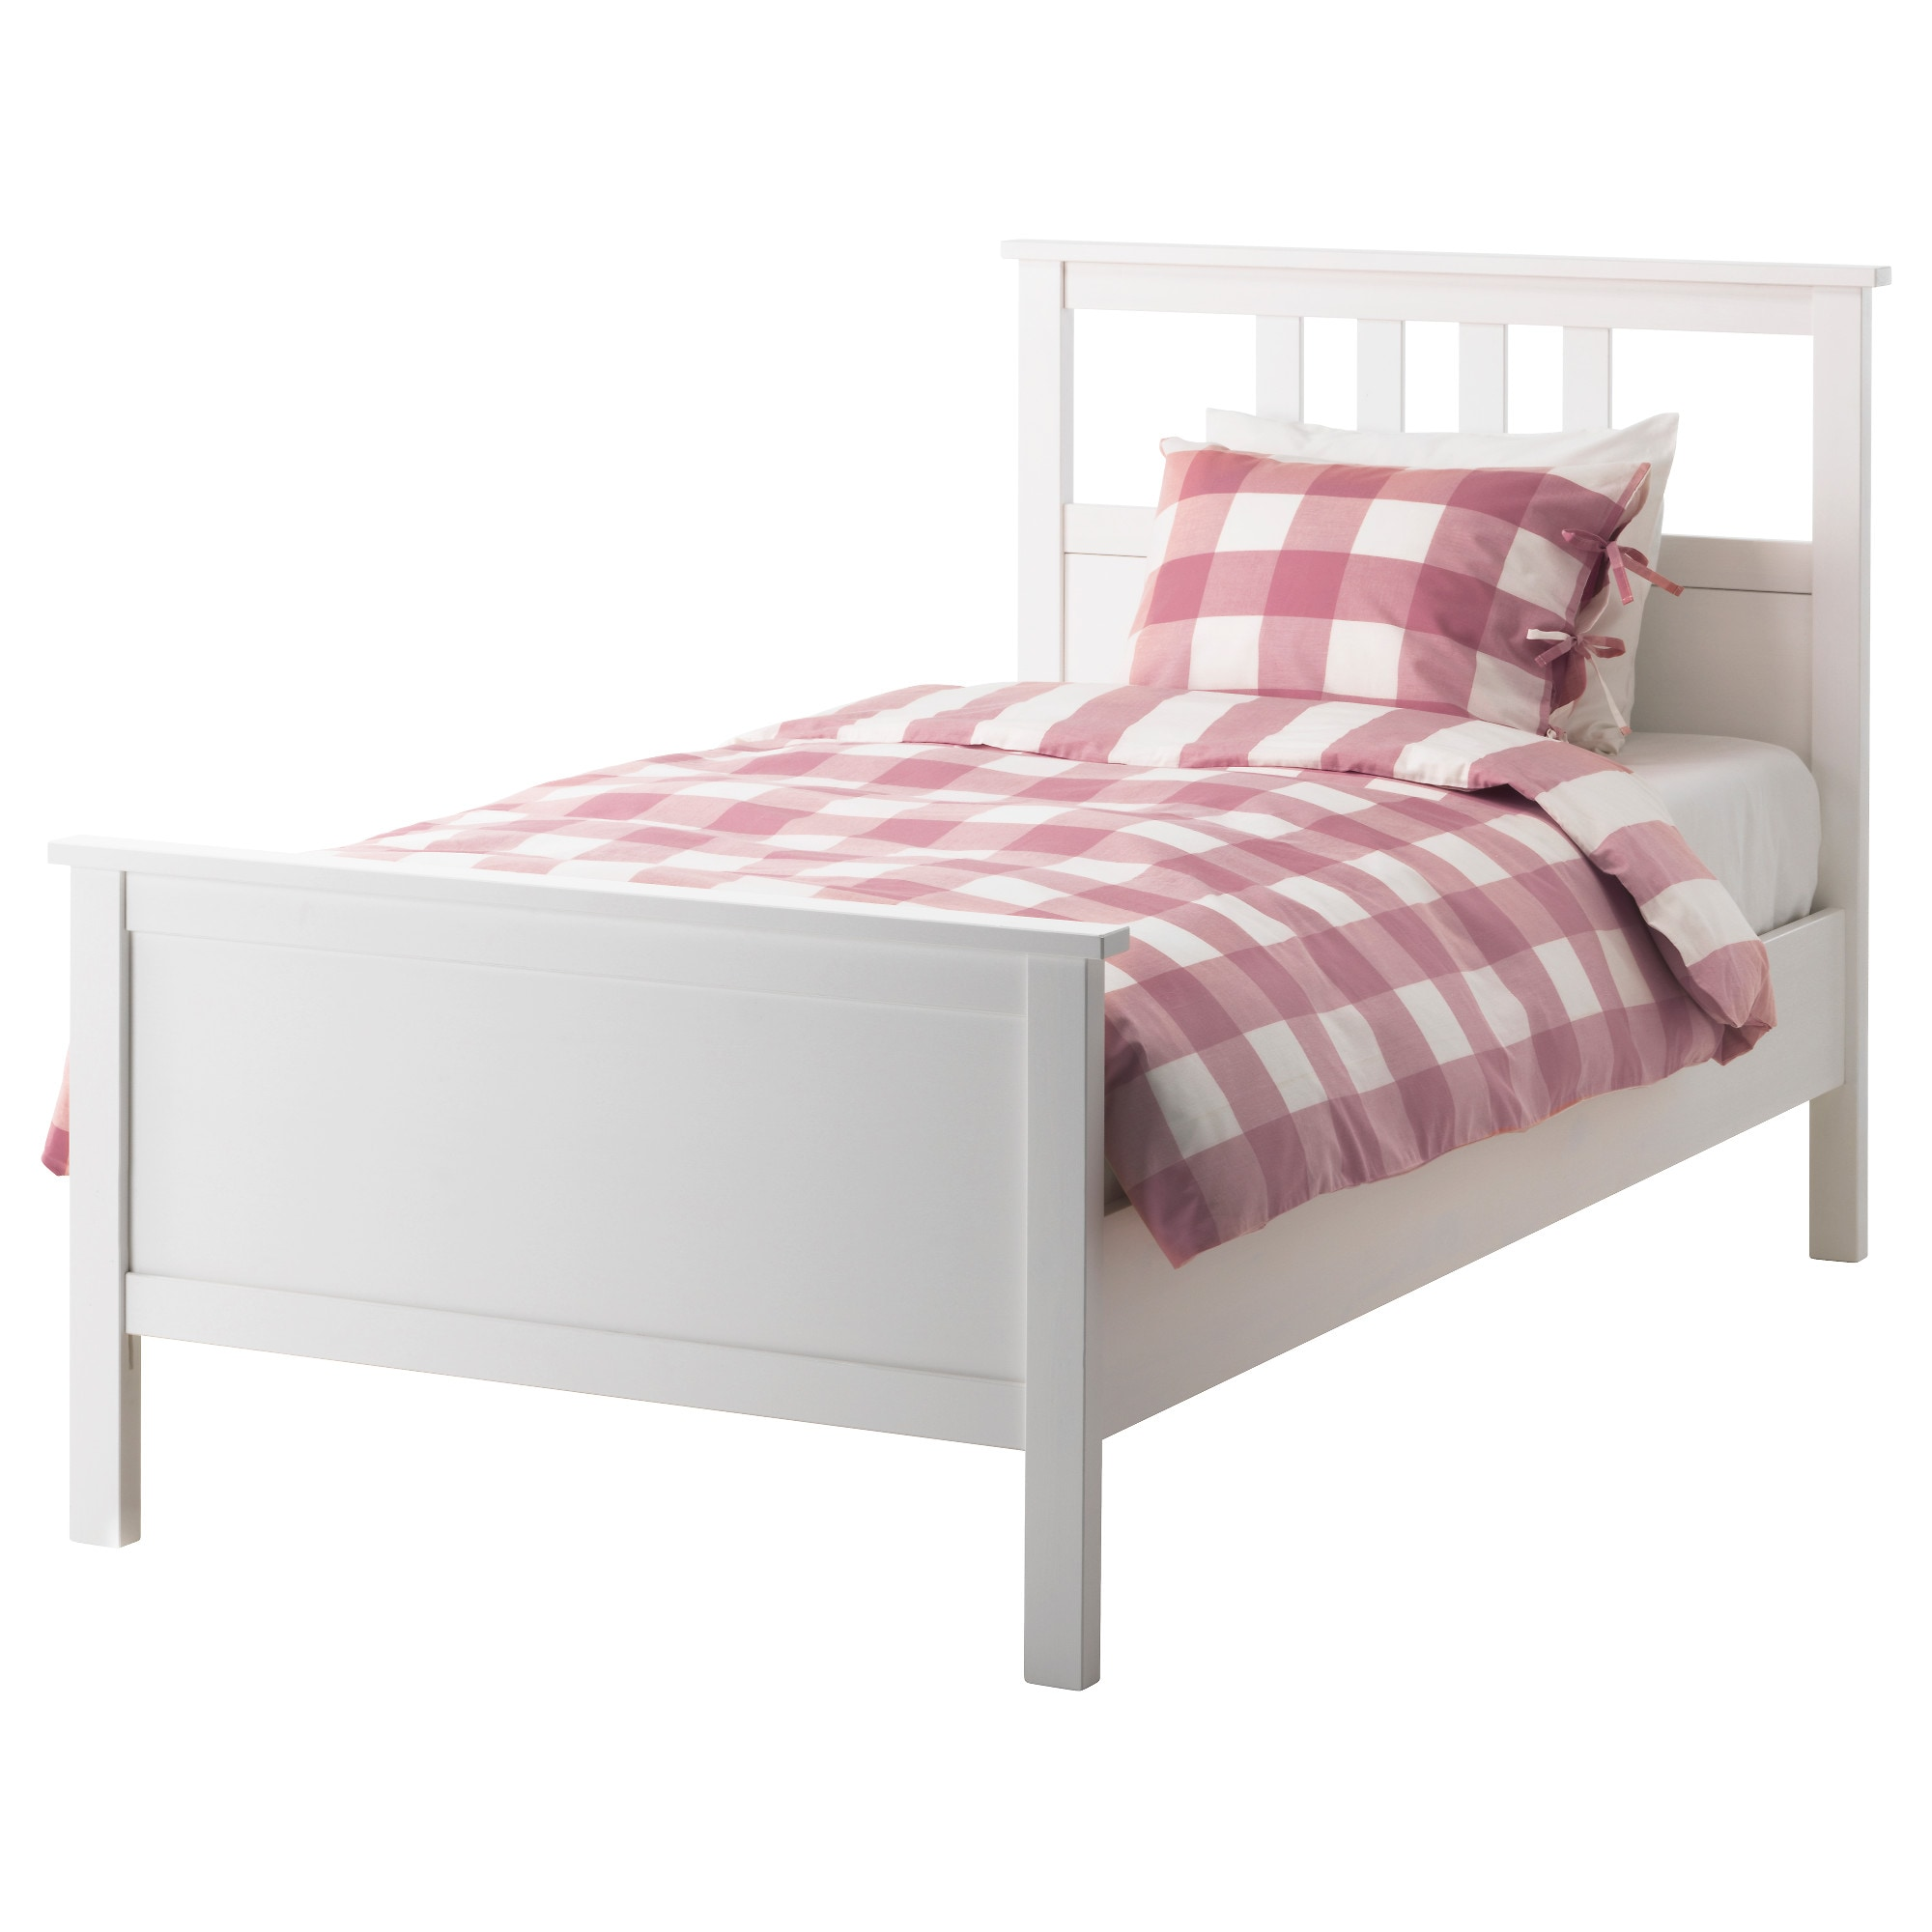 Uncategorized Bed Frames From Ikea hemnes bed frame ikea